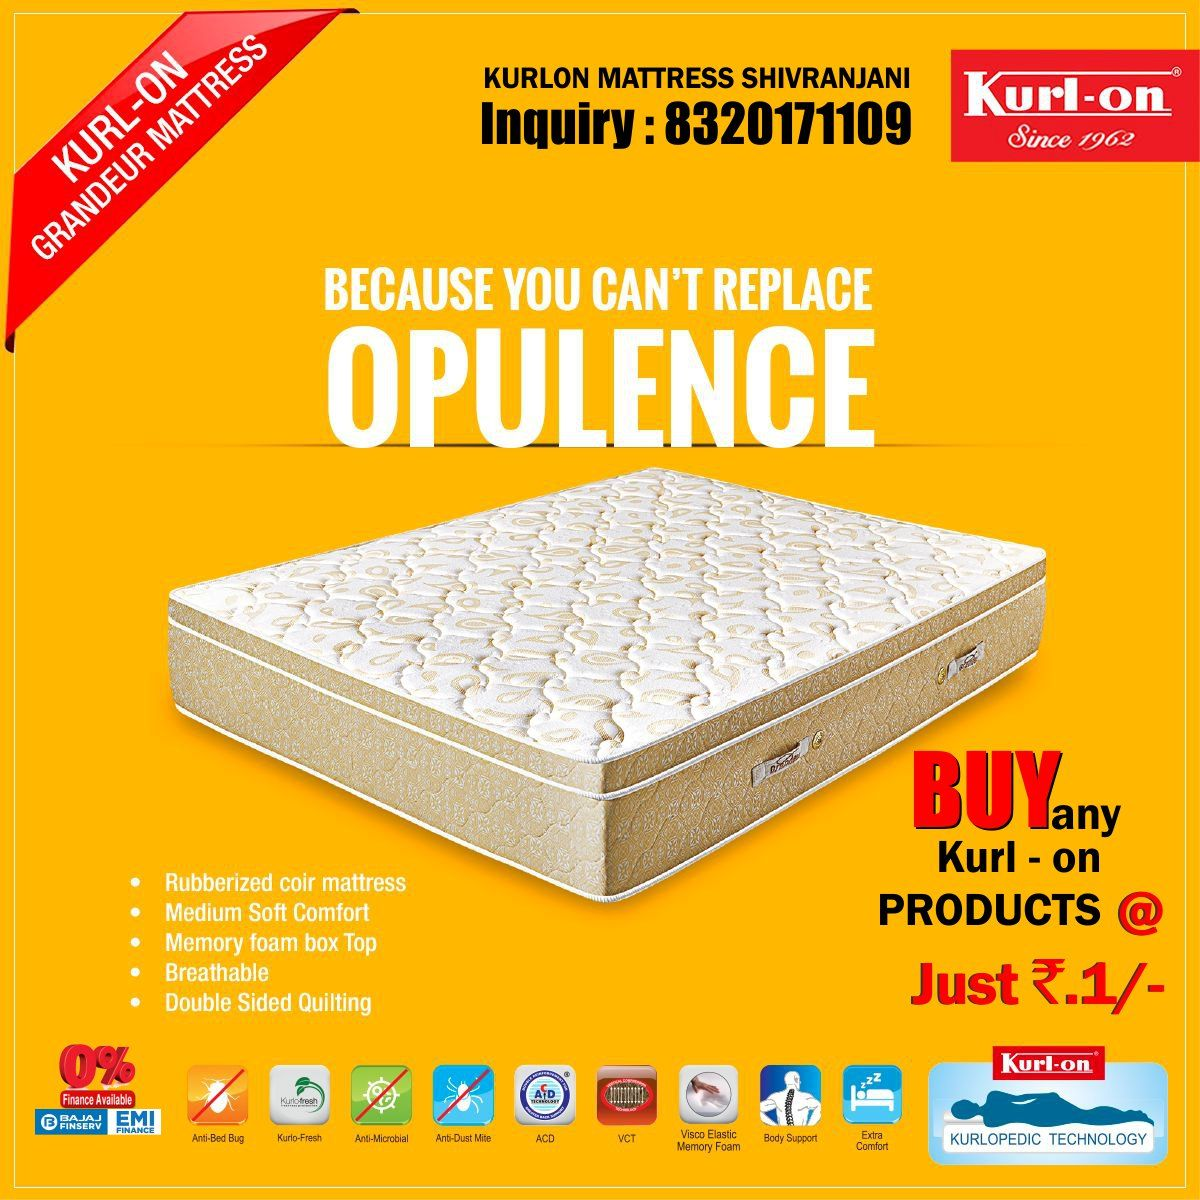 pin by kurlon mattress shivranjani on kurlon mattress shivranjani